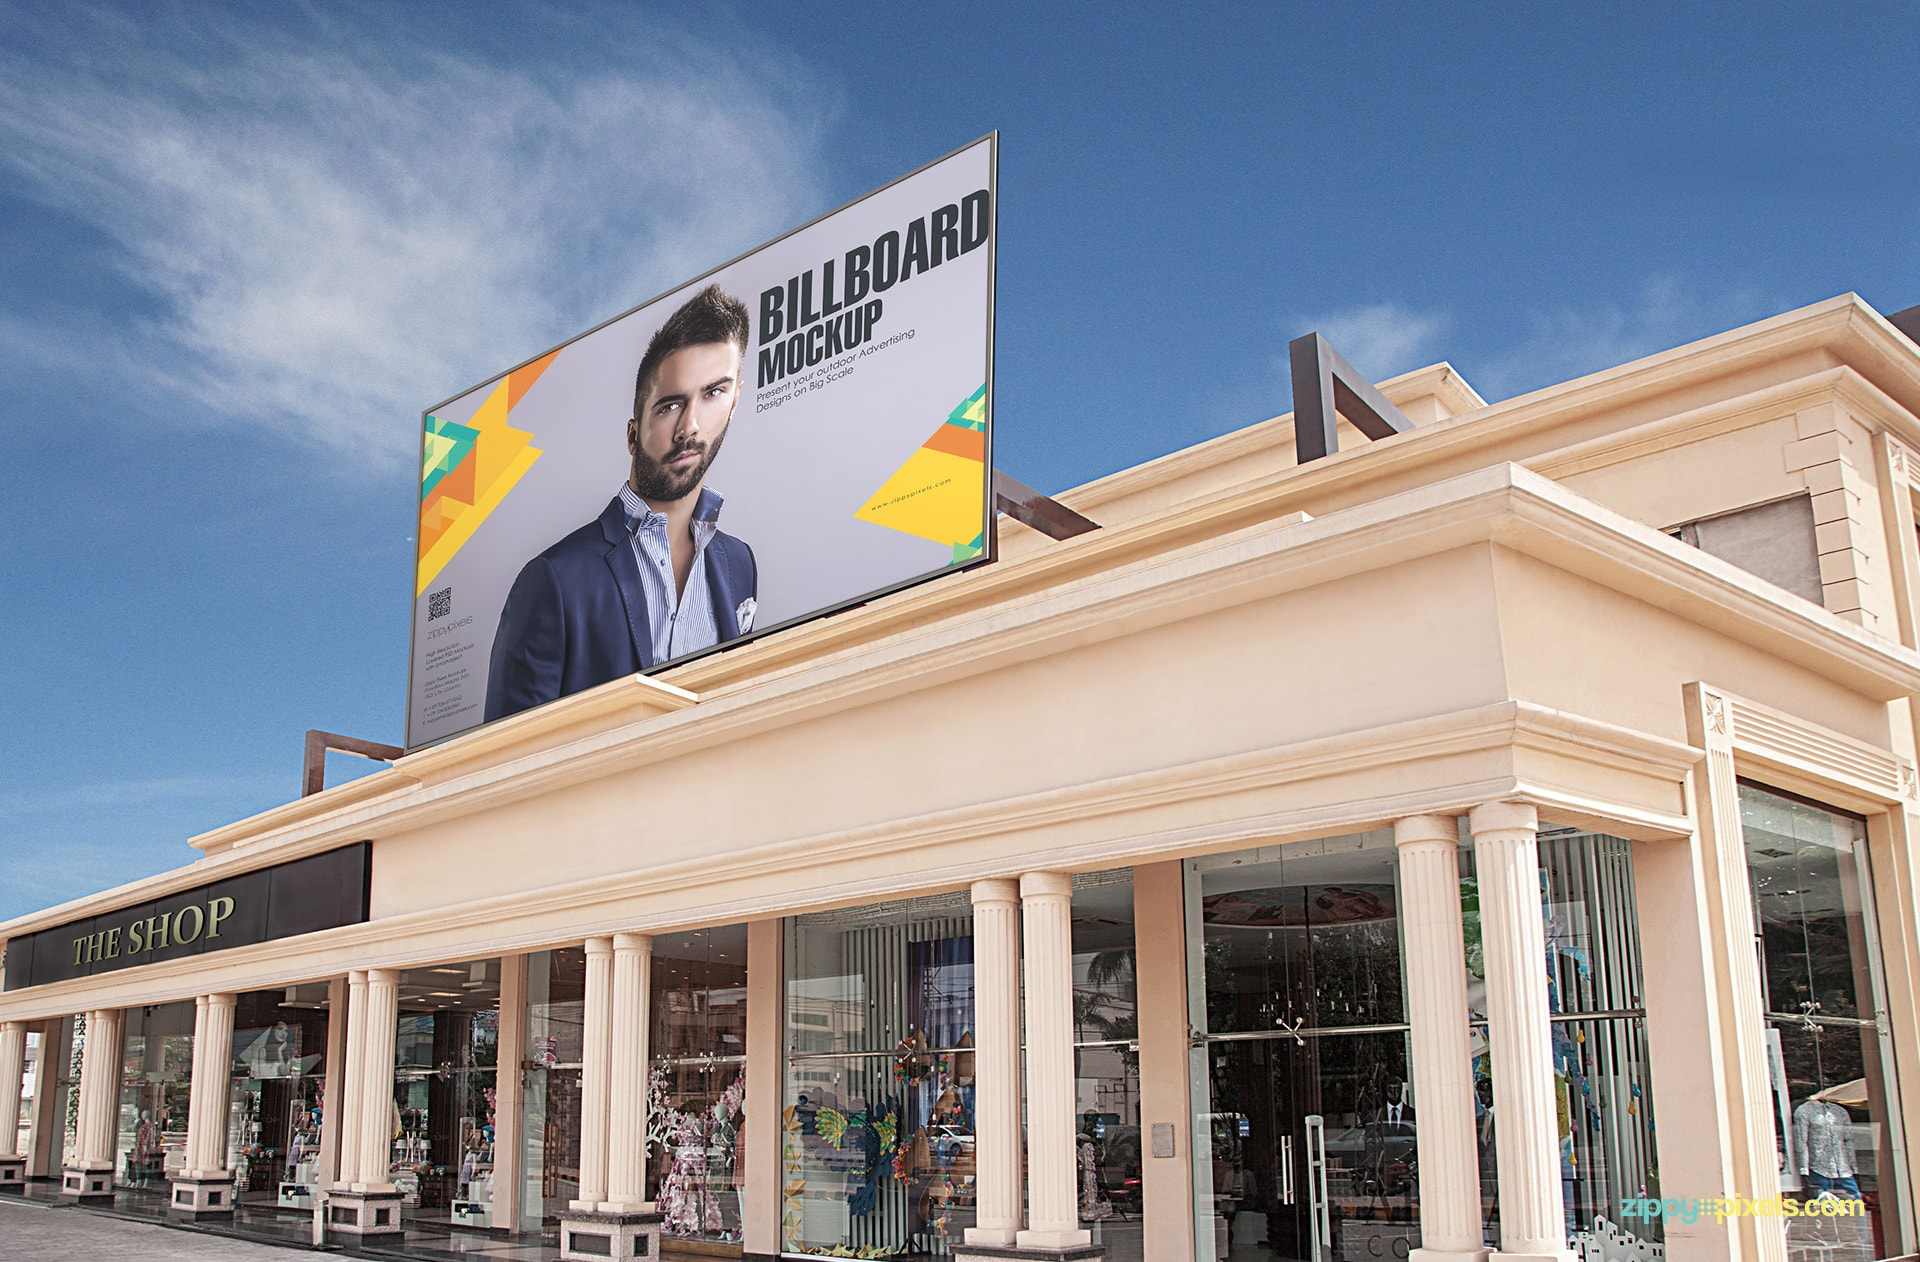 Billboard PSD mockup showing a billboard on shopping mall for outdoor advertising